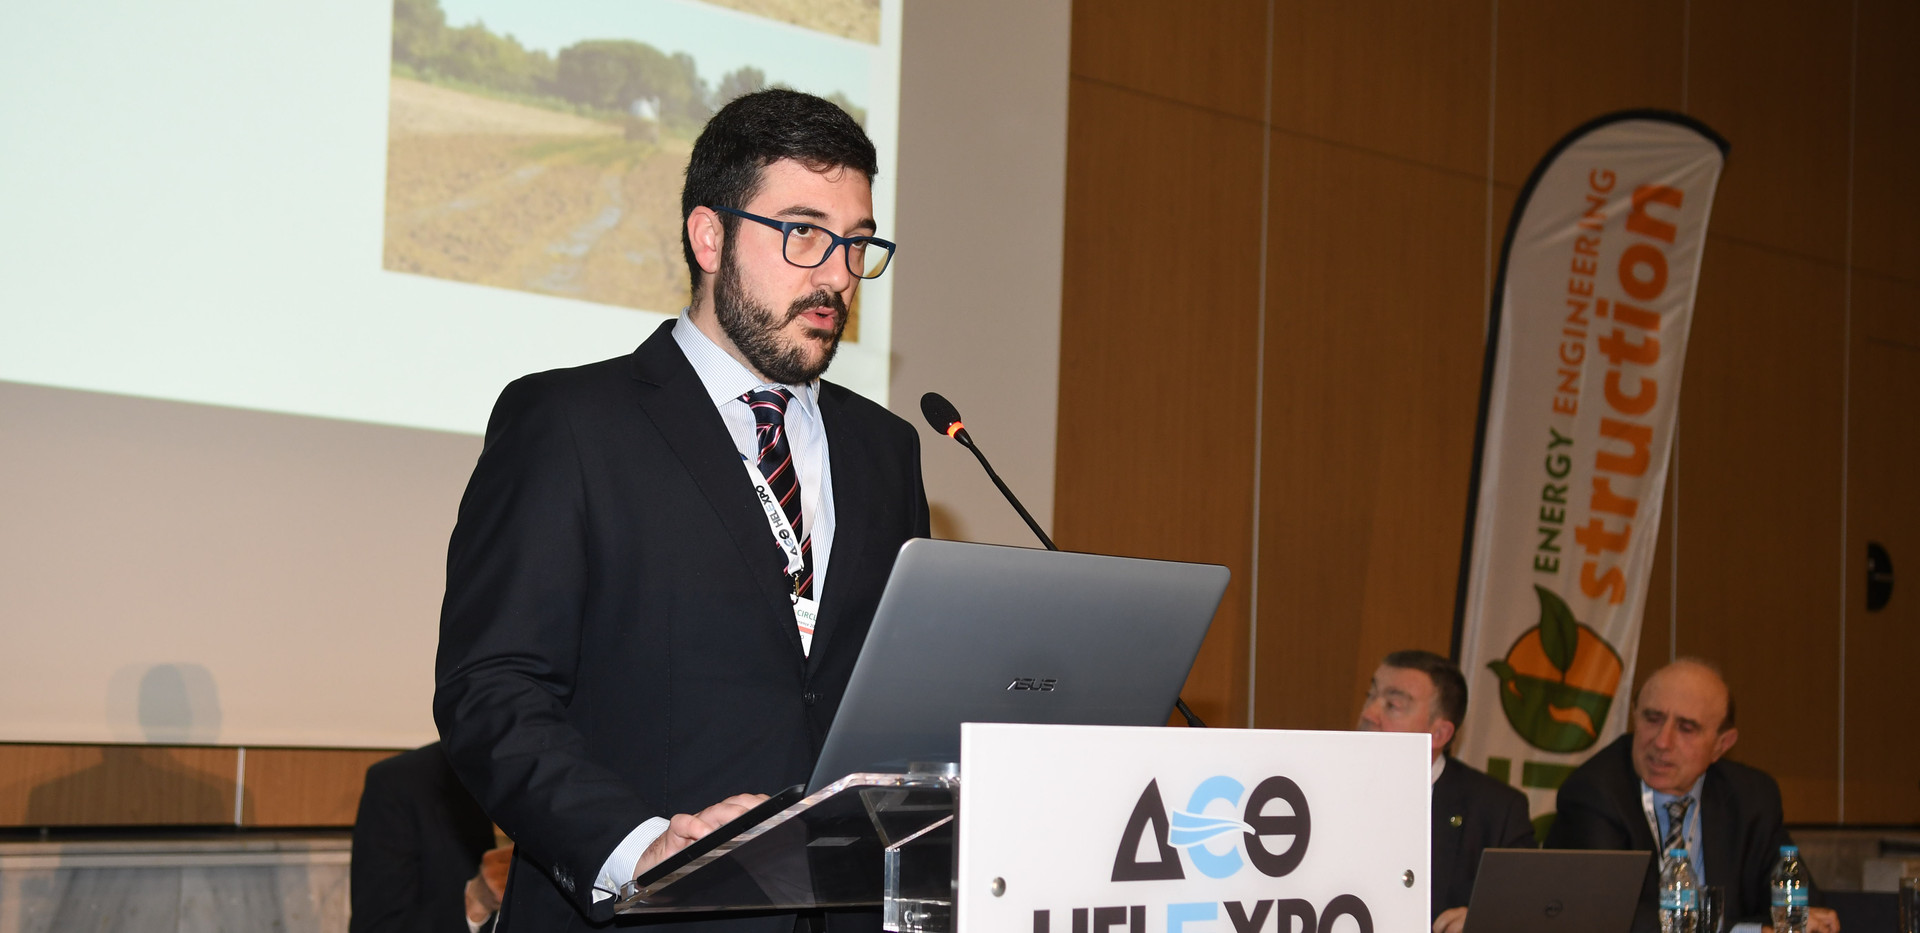 Antonio Pulina, Desertification Research Centre (NRD-UNISS), University of Sassari (Italy)